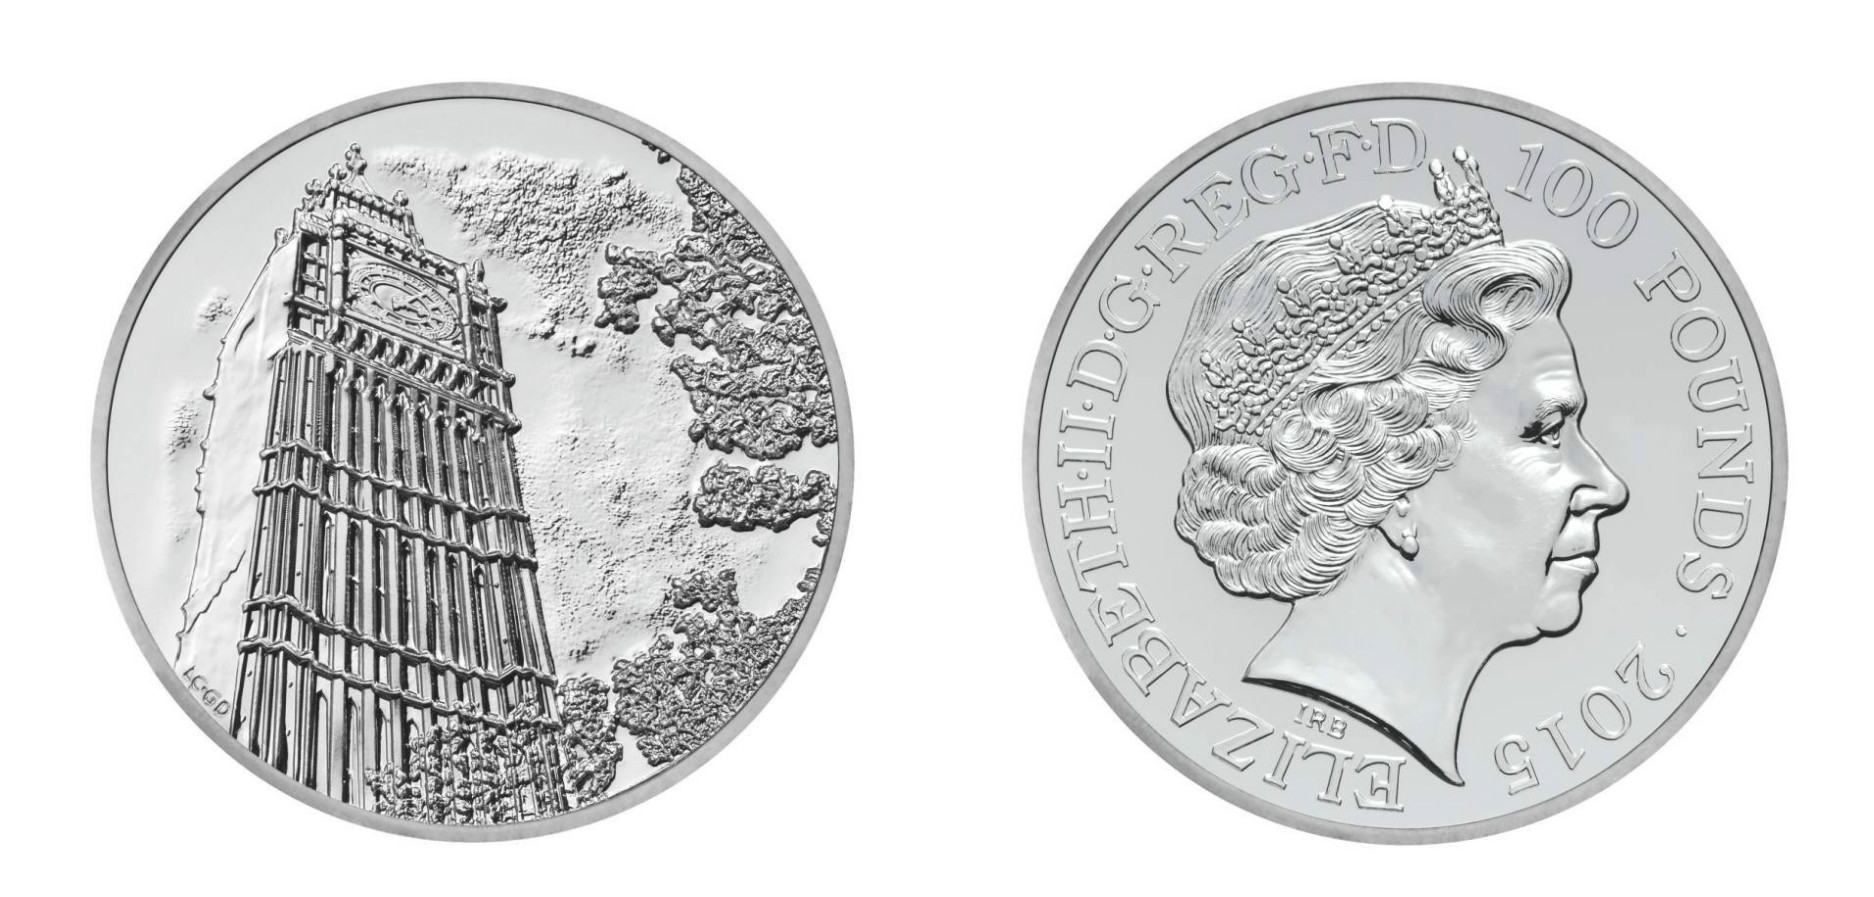 The New £100 coin will be released to celebrate the New Year Picture: Royal Mint/Rex Features)